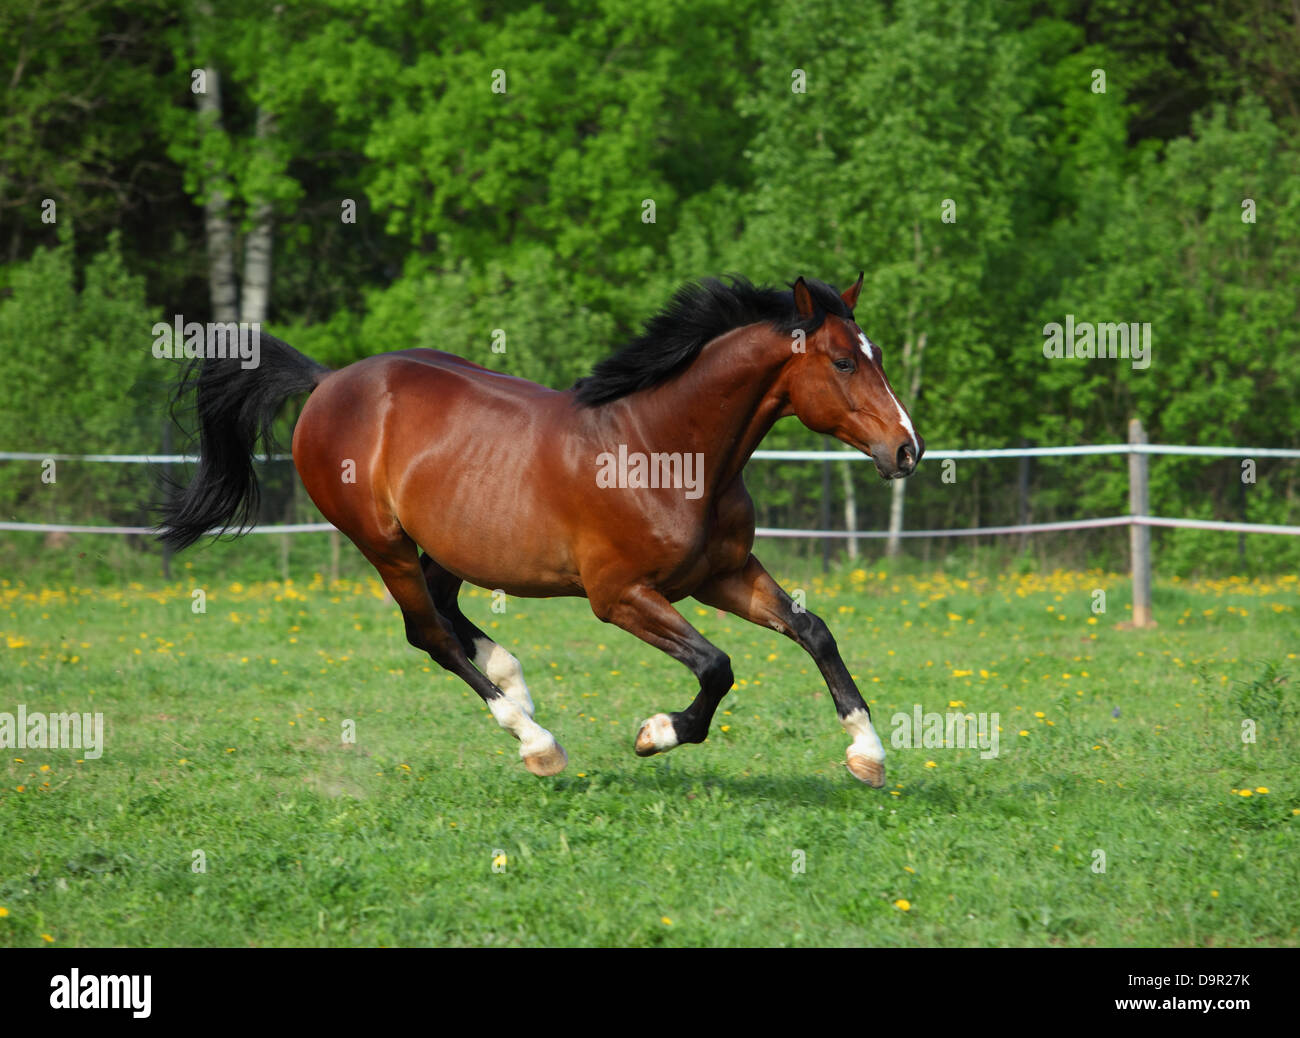 Holstein bay horse in freedom runs gallop on the meadow - Stock Image